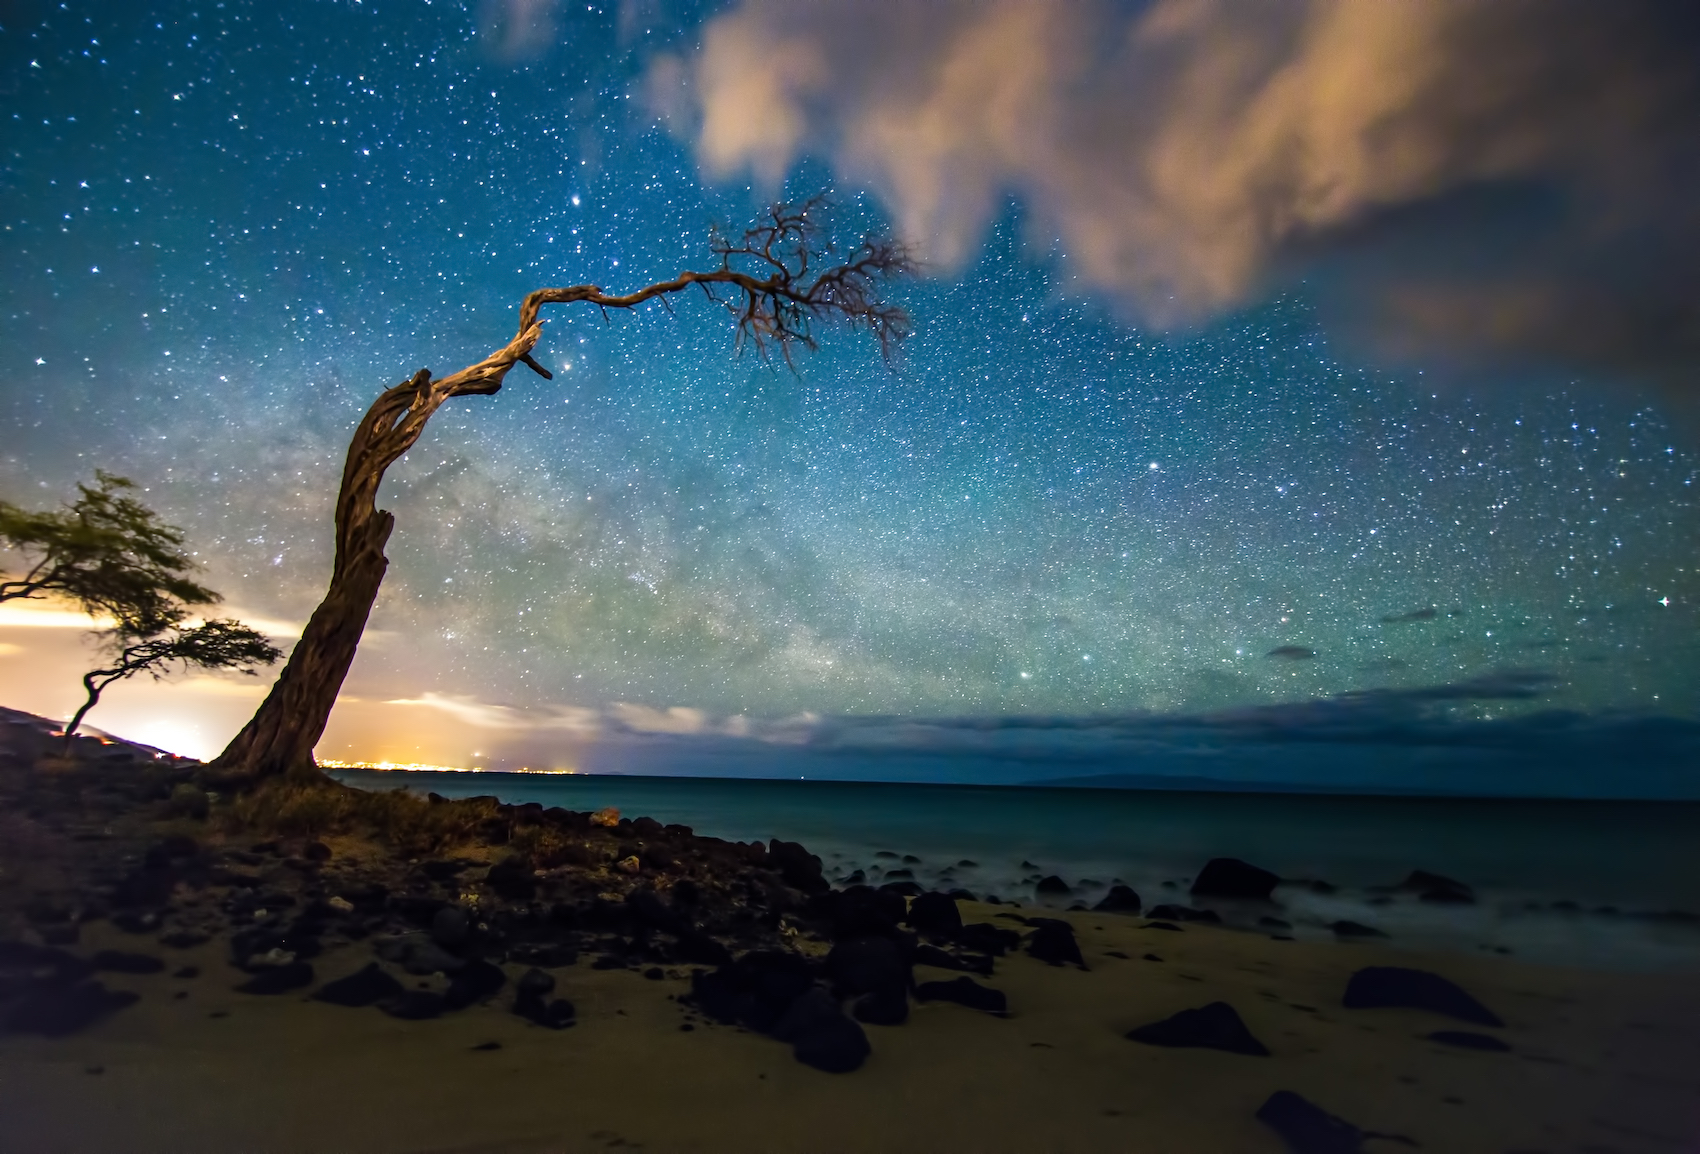 evening-beach-kihei-tour-epic-experience-maui.jpg